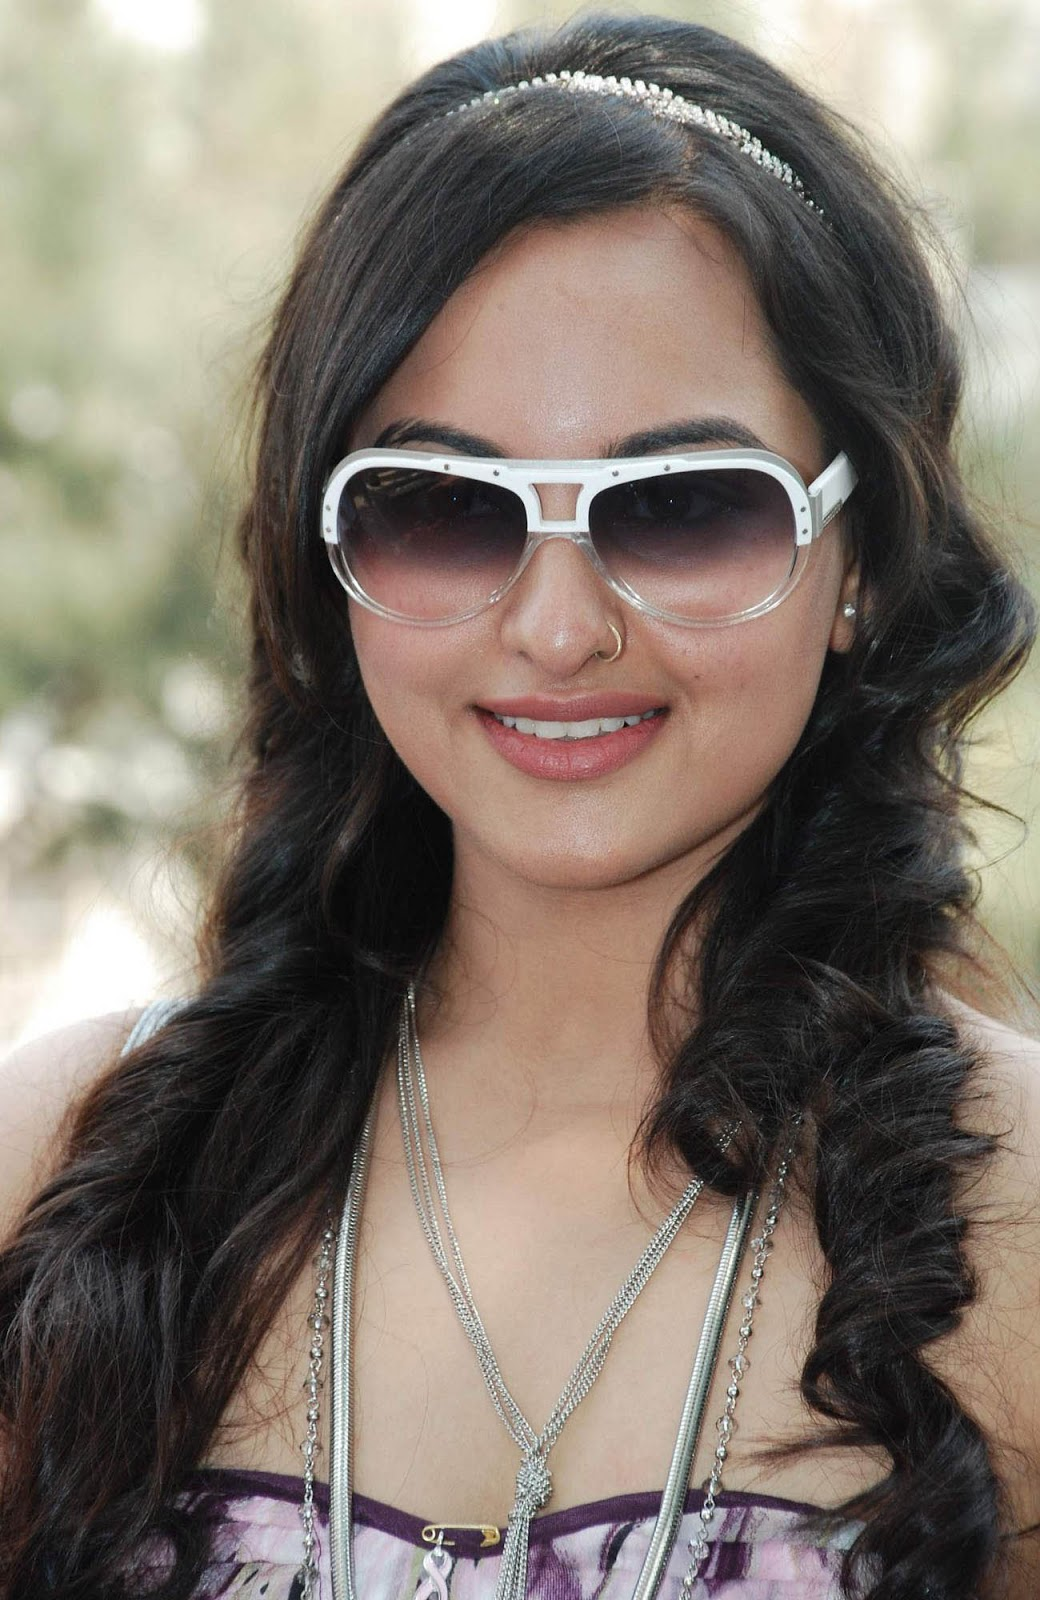 sonakshi sinha latest hd wallpapers - photo #13